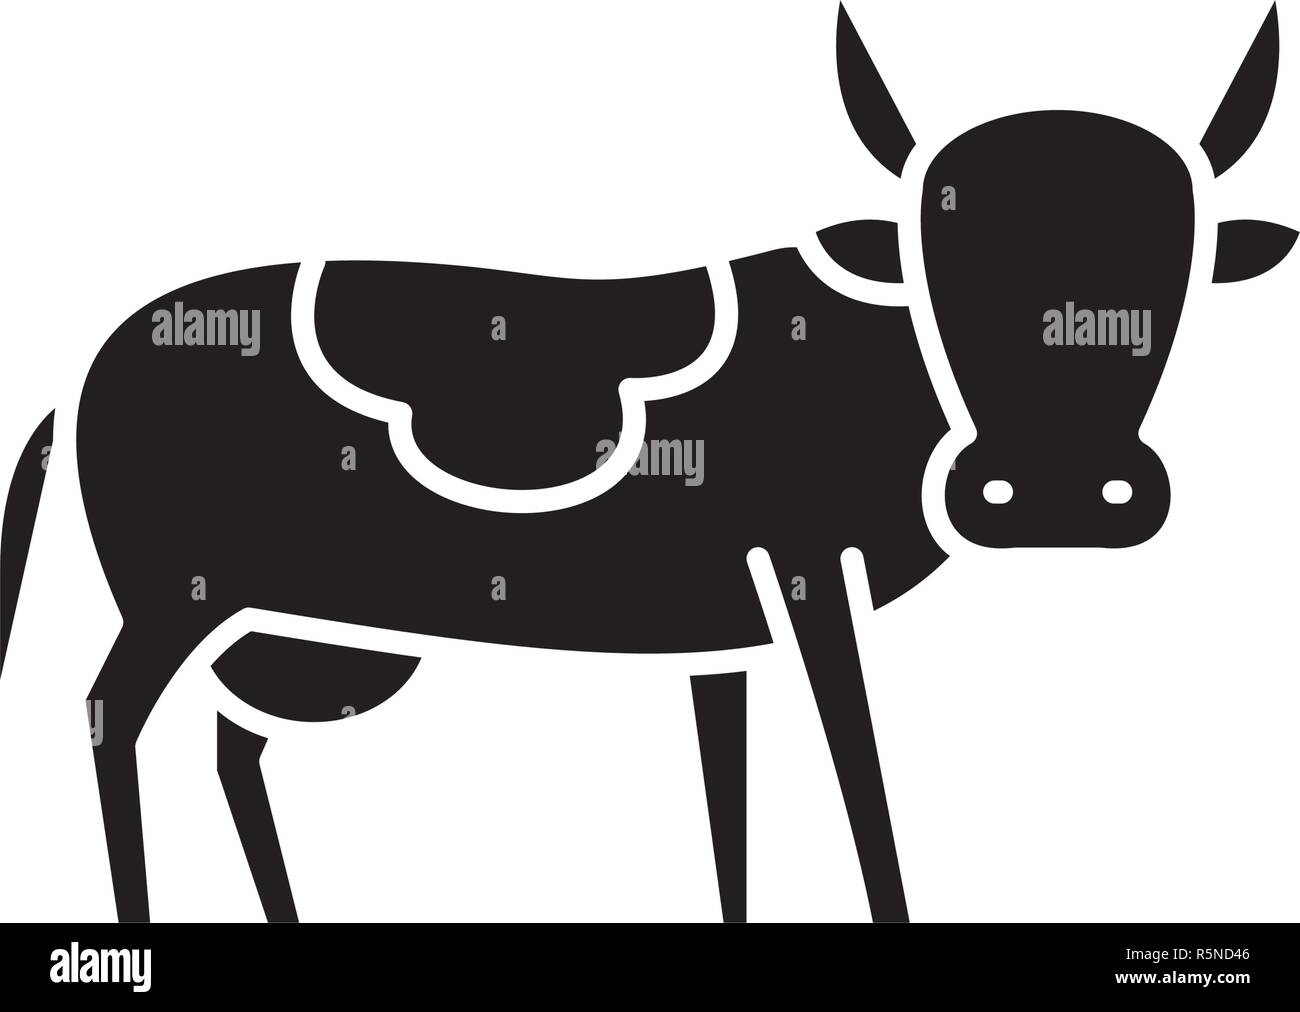 Bull black icon, vector sign on isolated background. Bull concept symbol, illustration  - Stock Vector